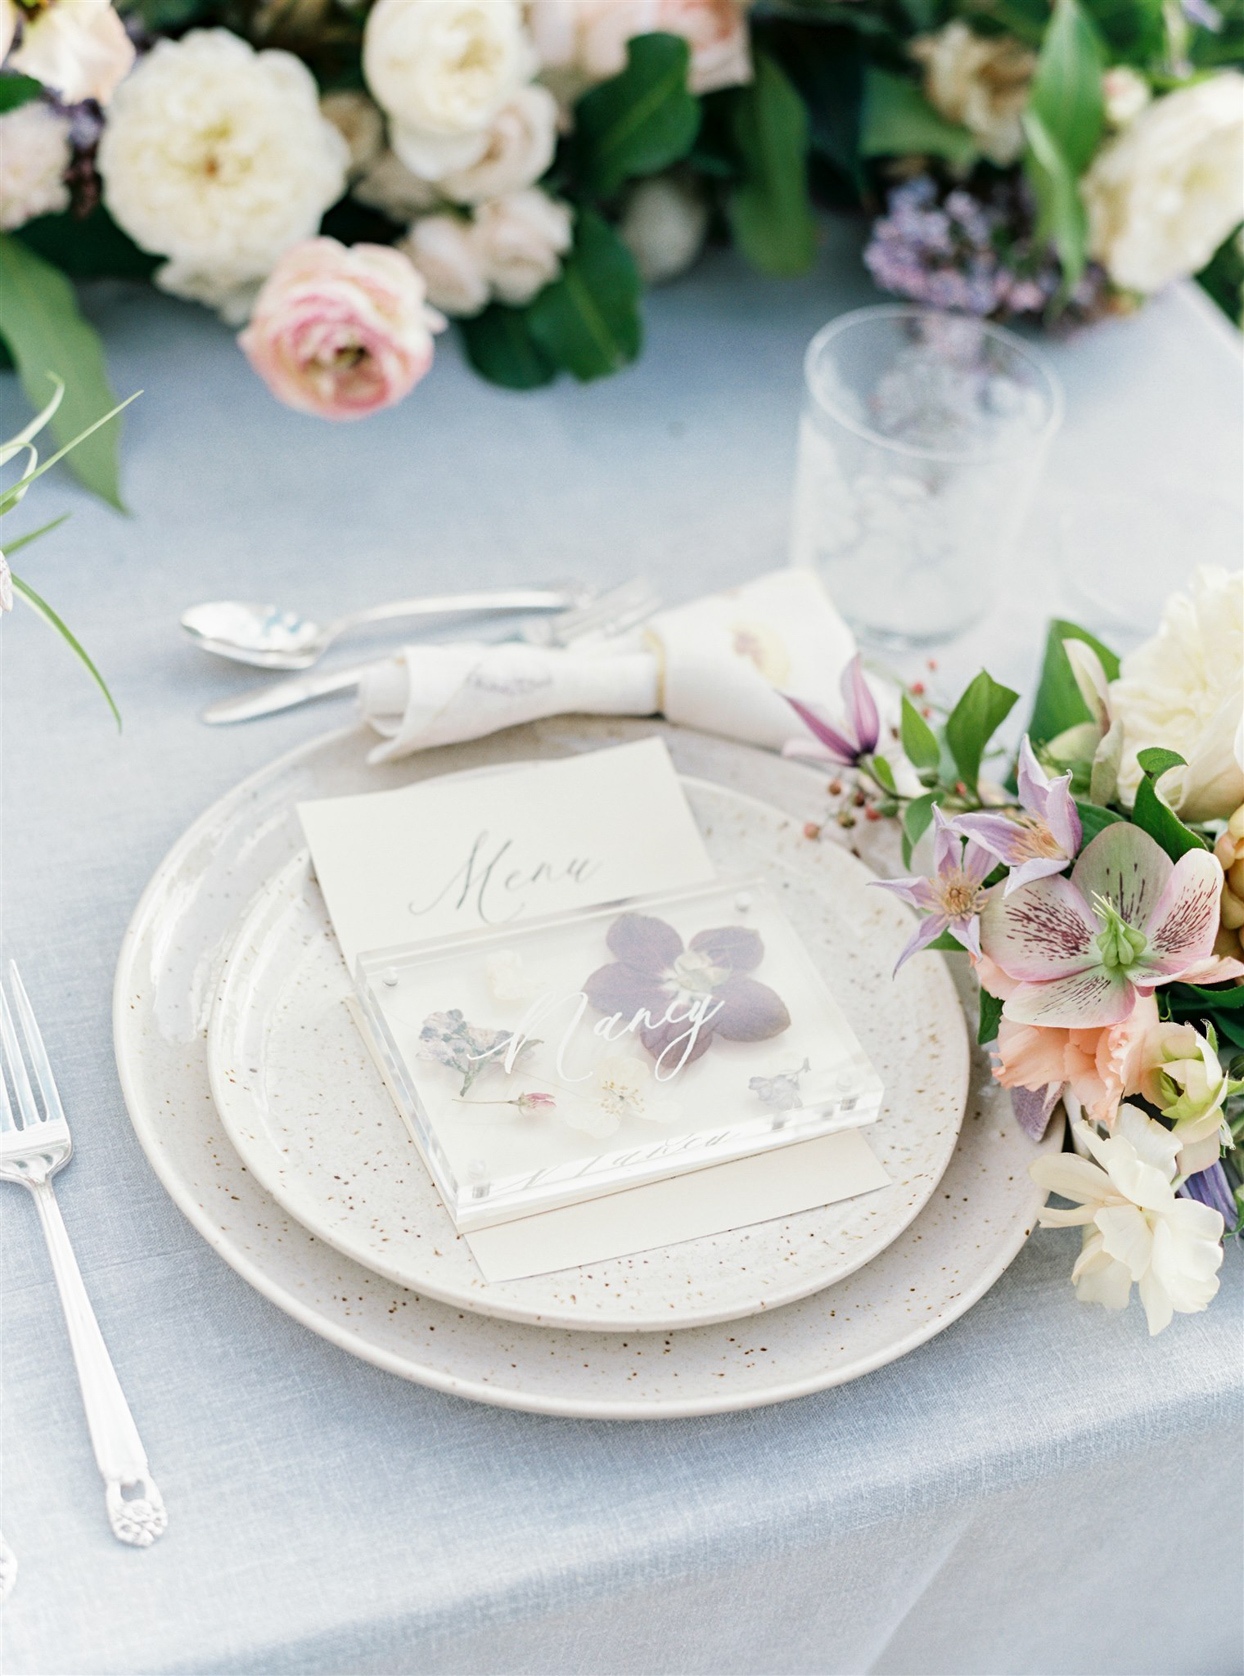 wedding reception place setting with engraved blocks with dried flowers as place cards